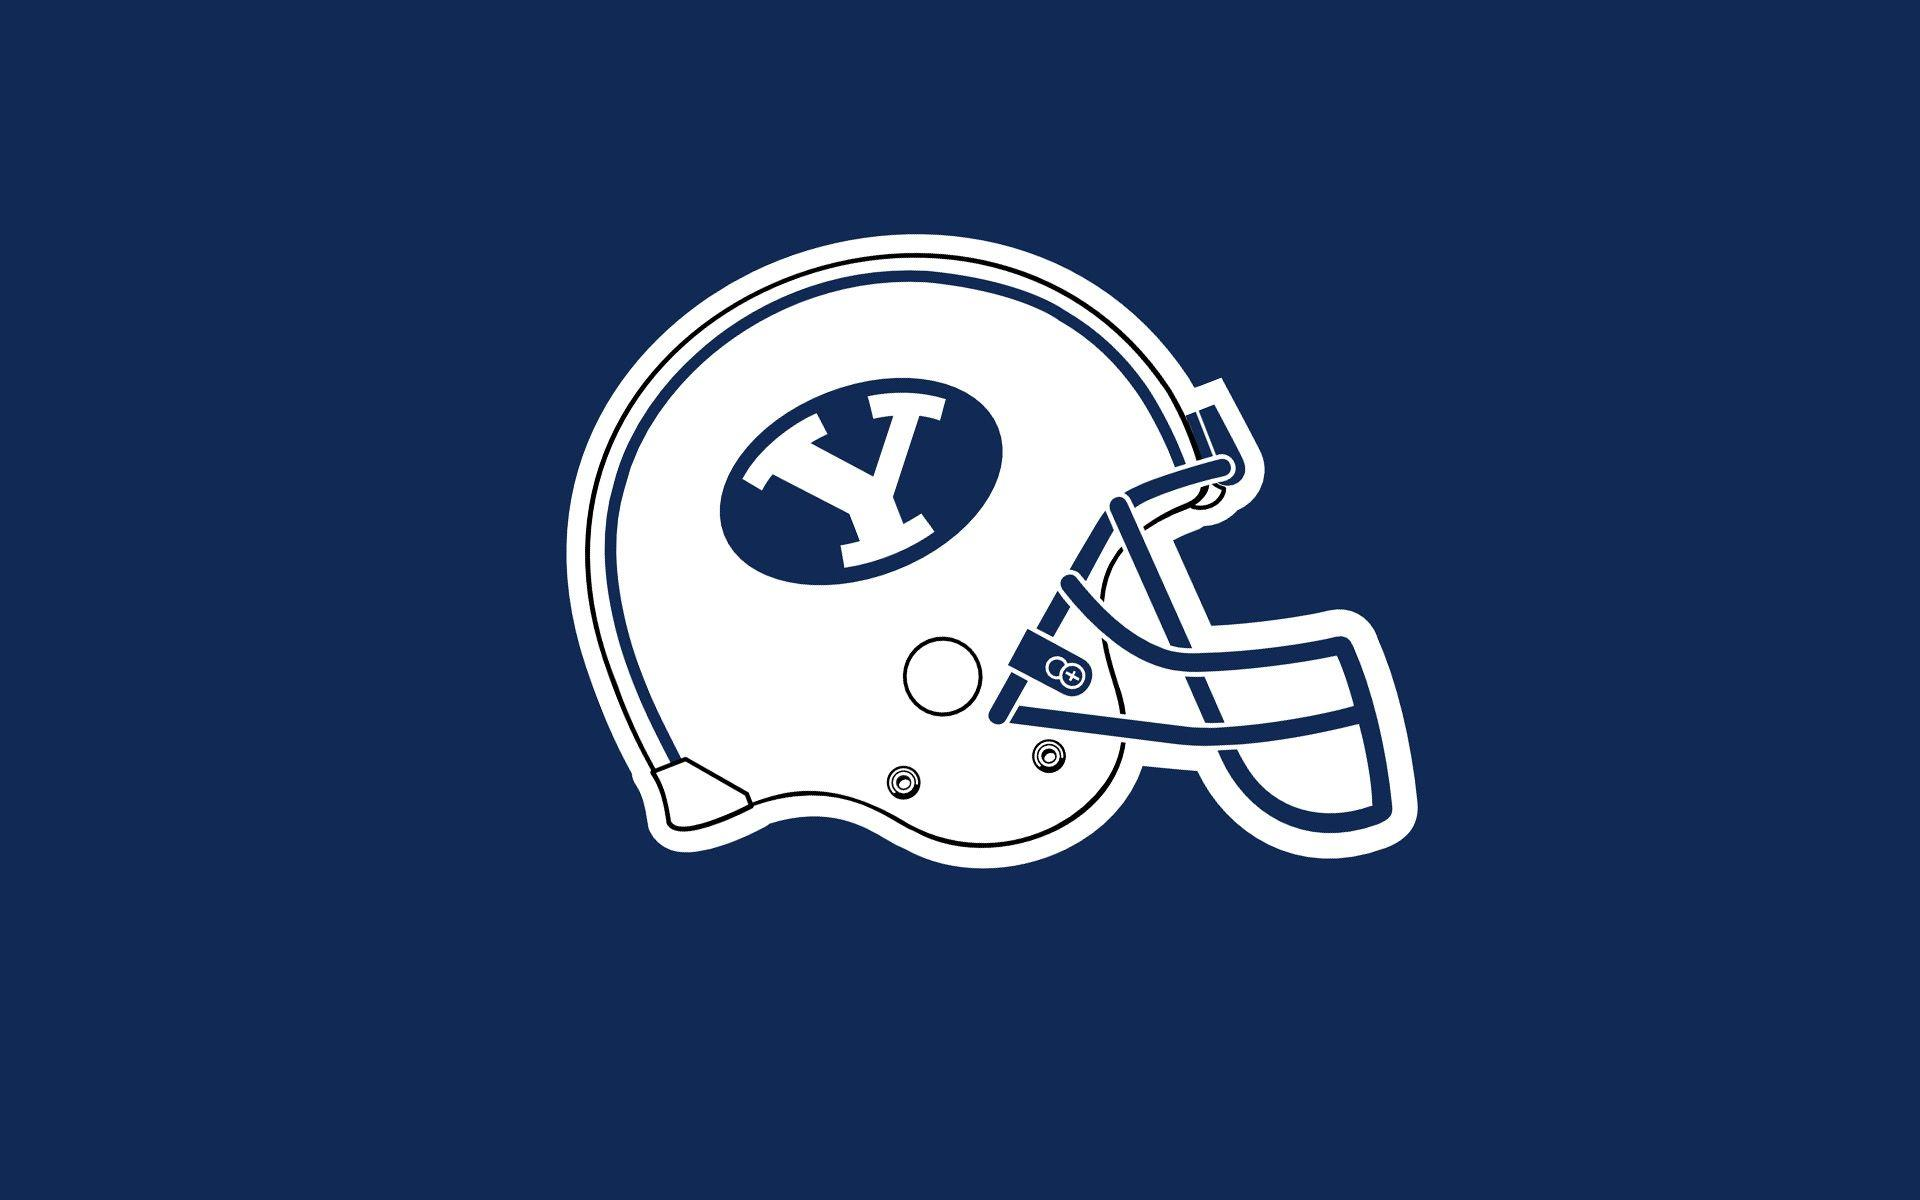 Byu Android Phone Wallpapers Wallpaper Cave